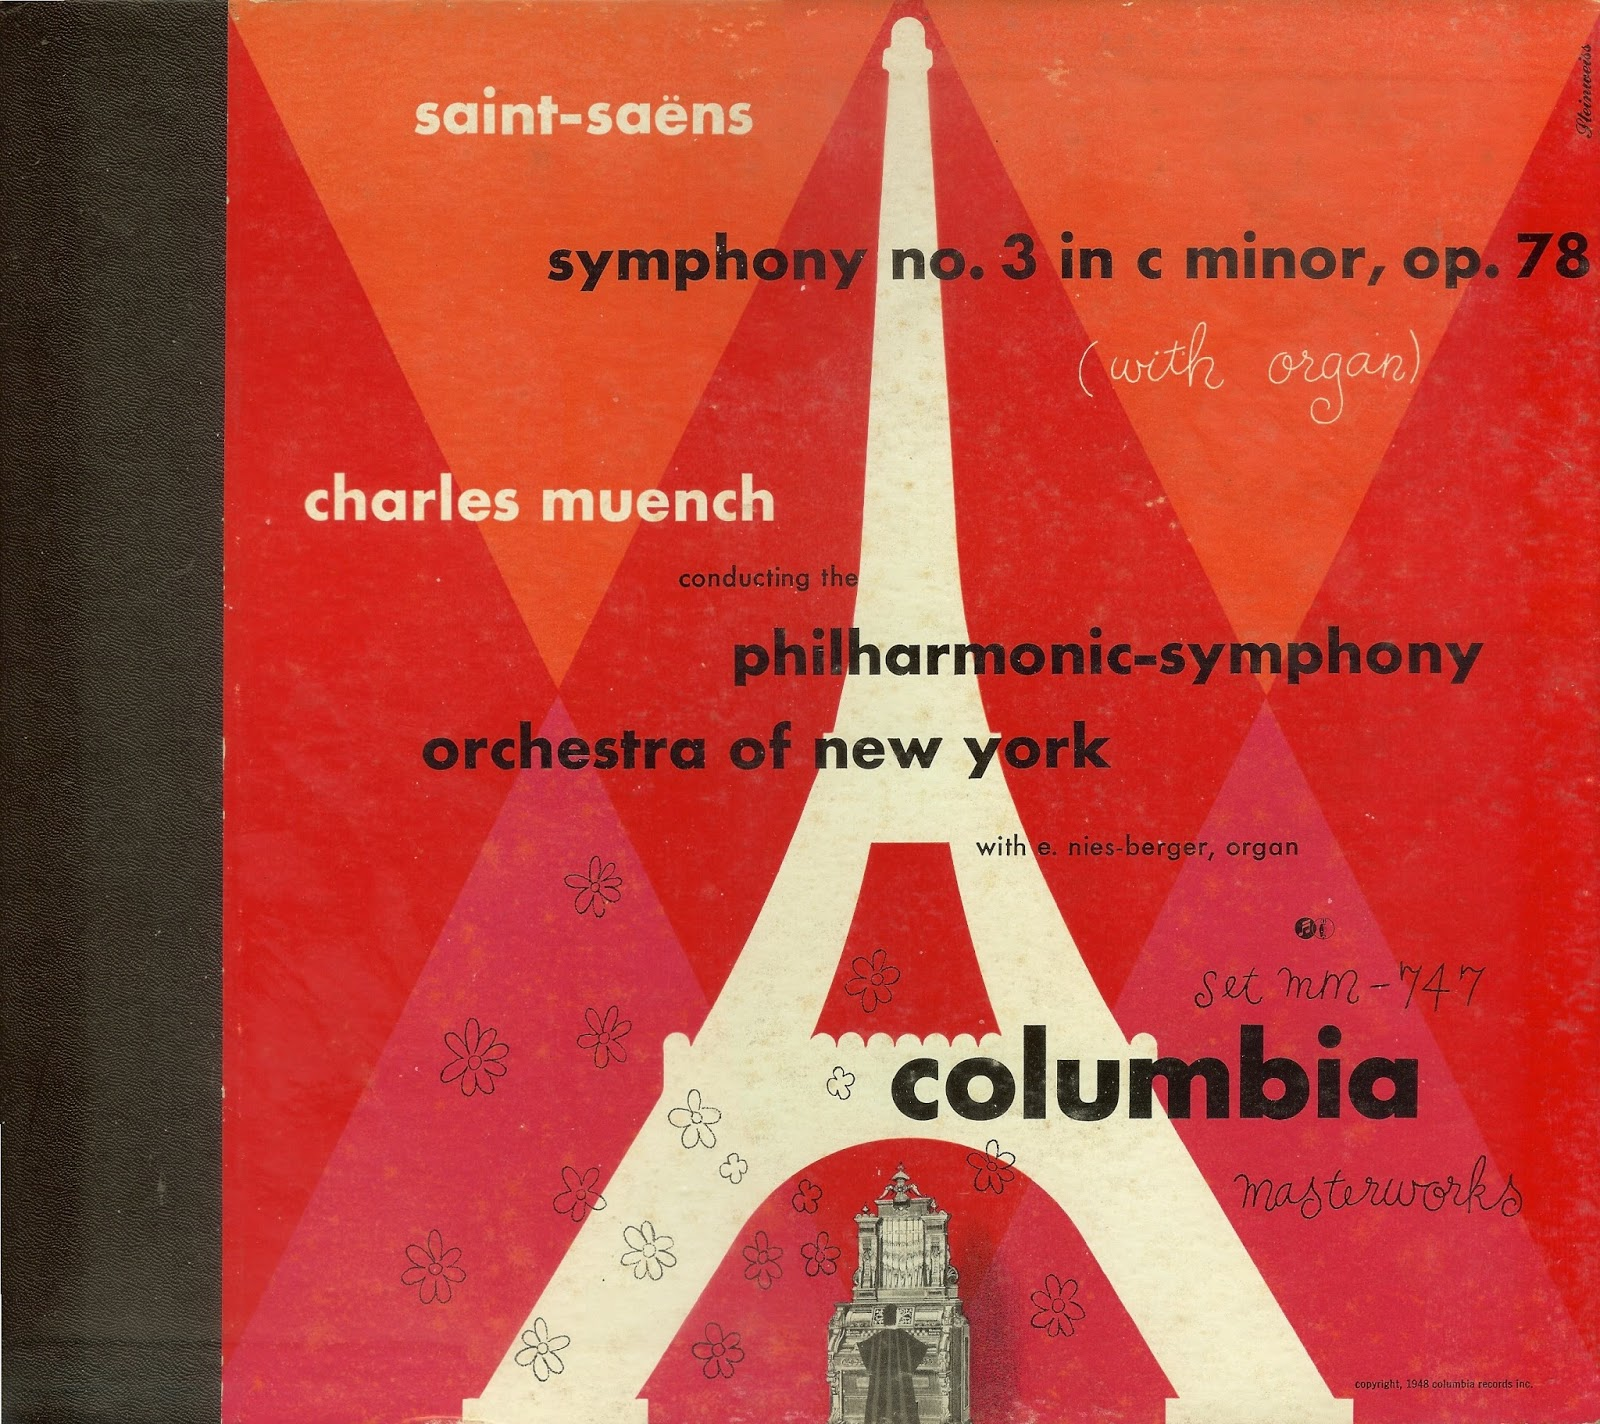 chicago at symphony hall album mp3 download